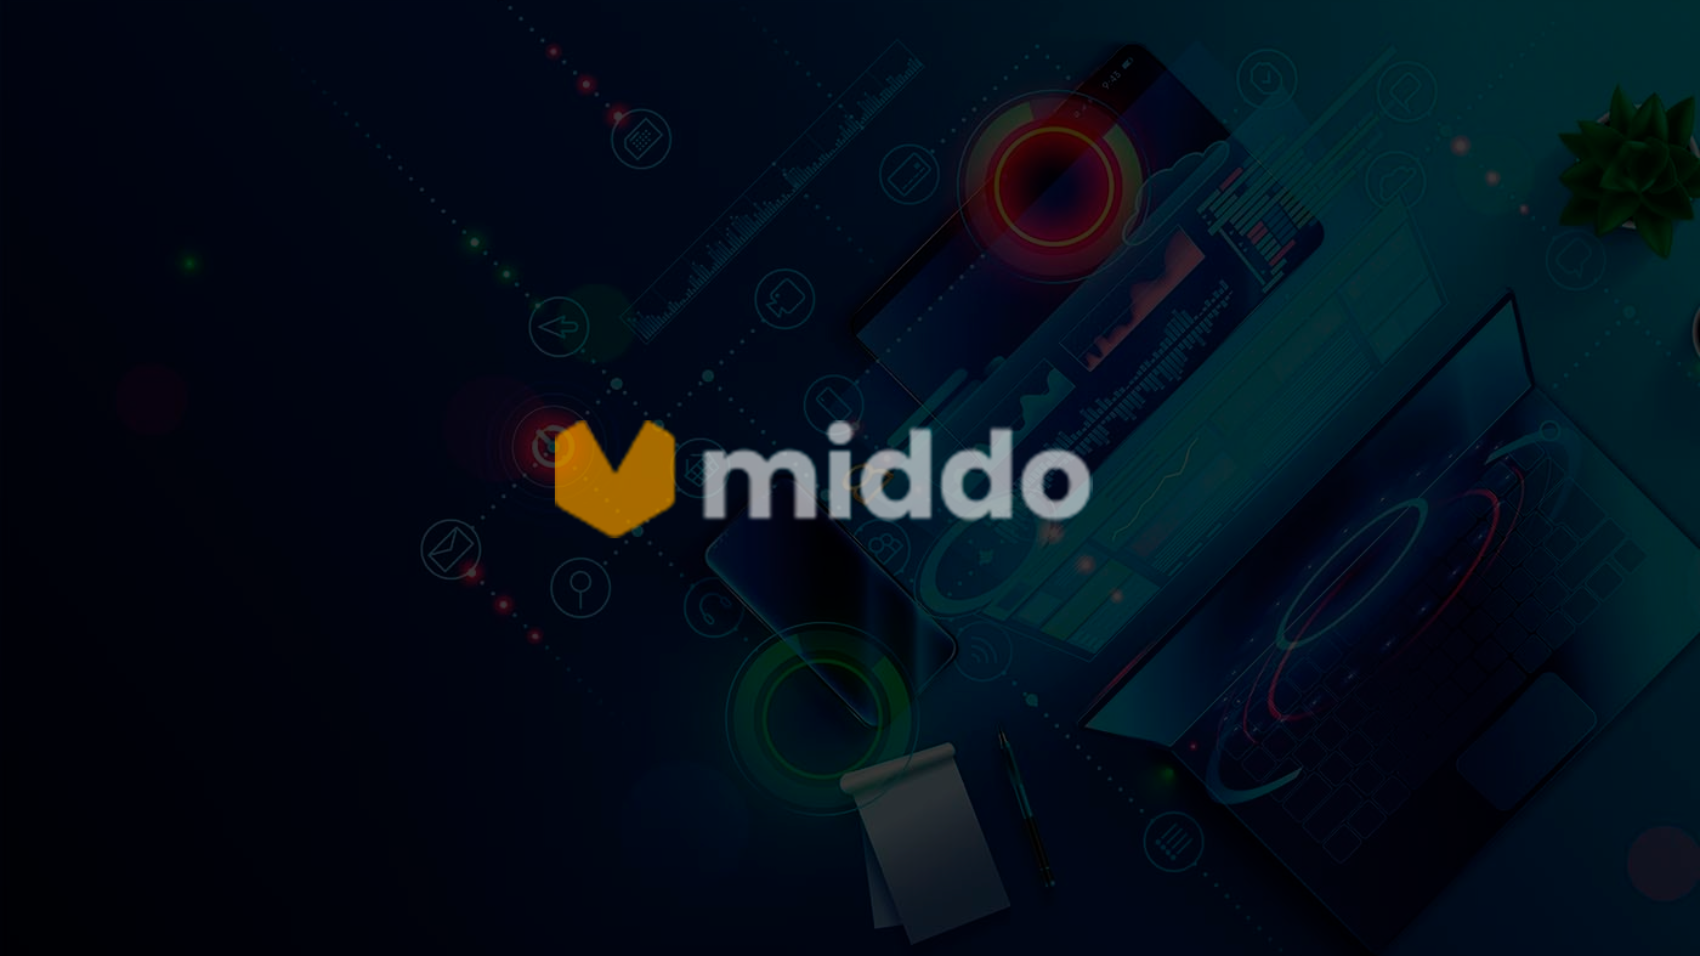 middo_services-1400x800